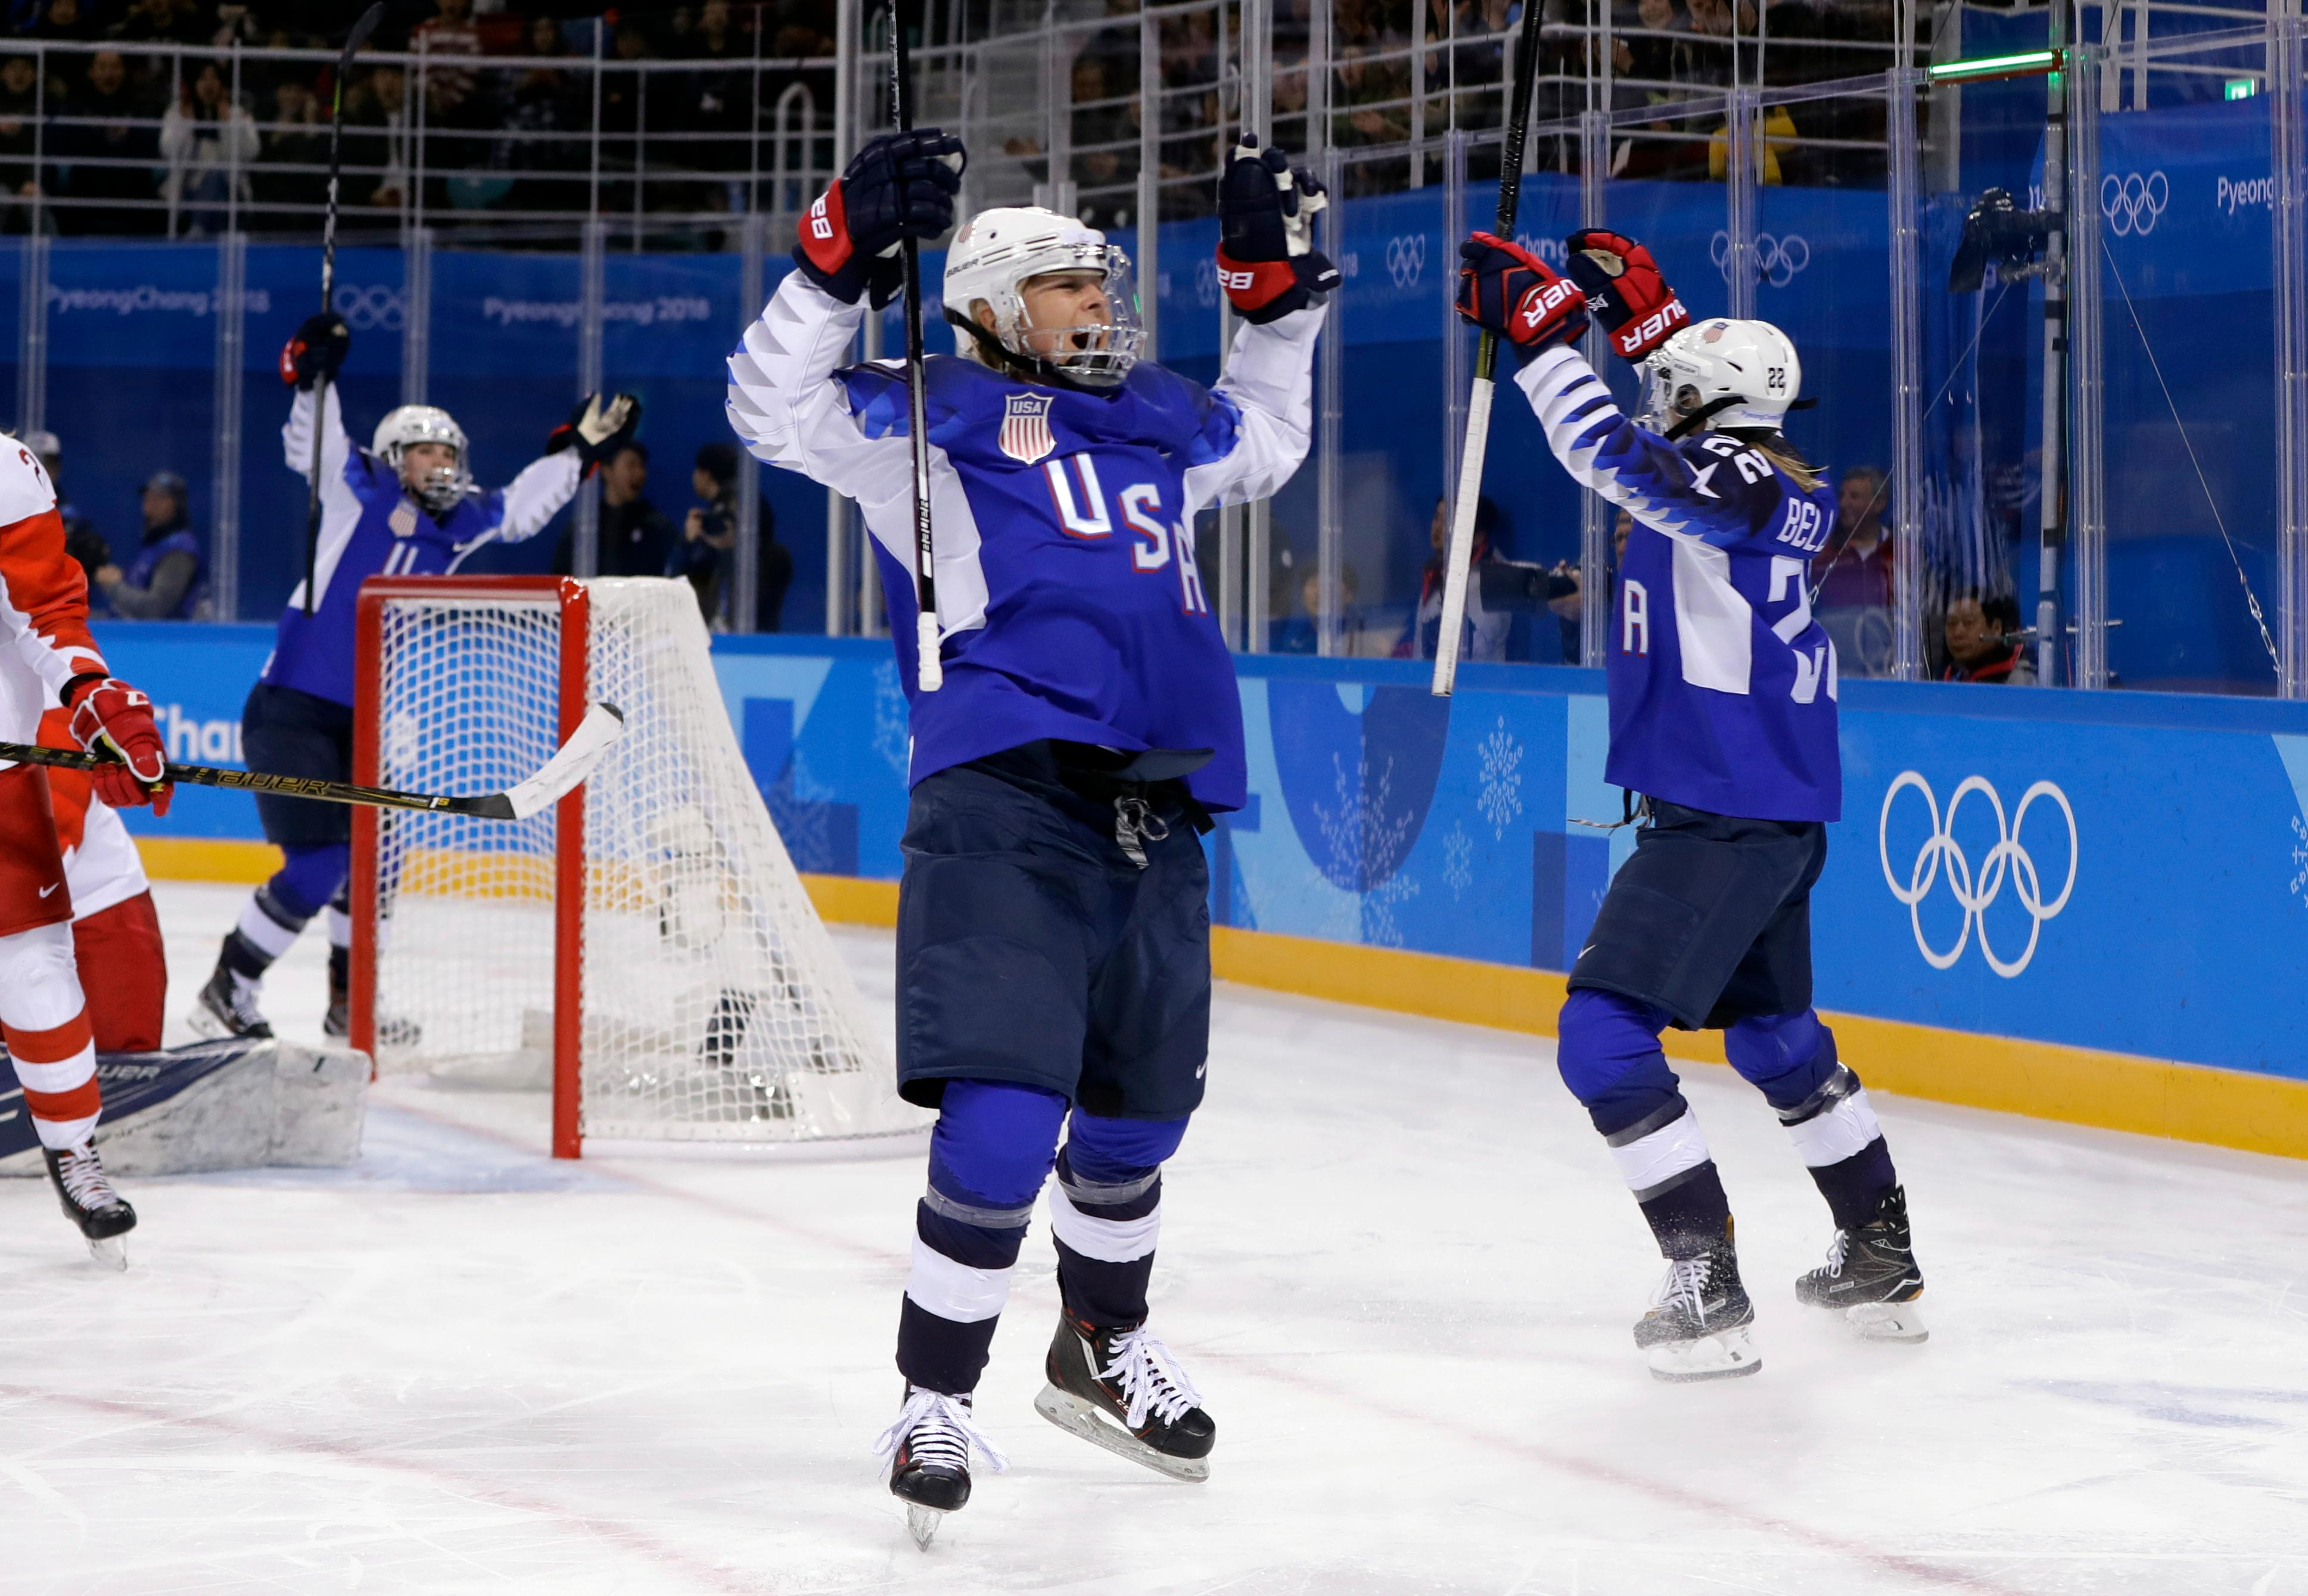 Players from the United States celebrate after Kacey Bellamy scores a goal against the team from Russia during the first period of the preliminary round of the women's hockey game at the 2018 Winter Olympics in Gangneung, South Korea, Tuesday, Feb. 13, 2018. (AP Photo/Matt Slocum)